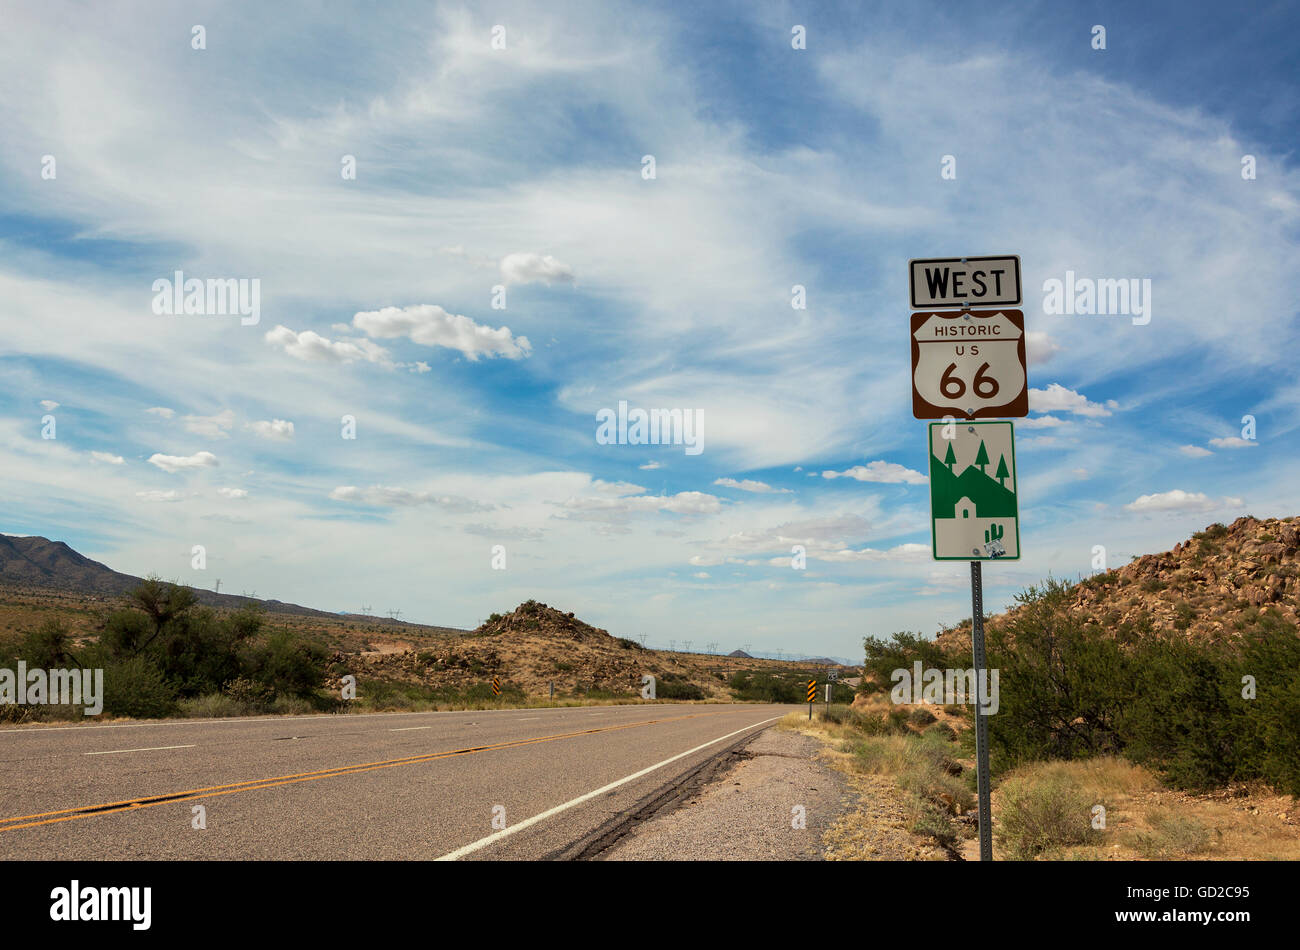 route 66 historic sign; arizona, united states of america stock